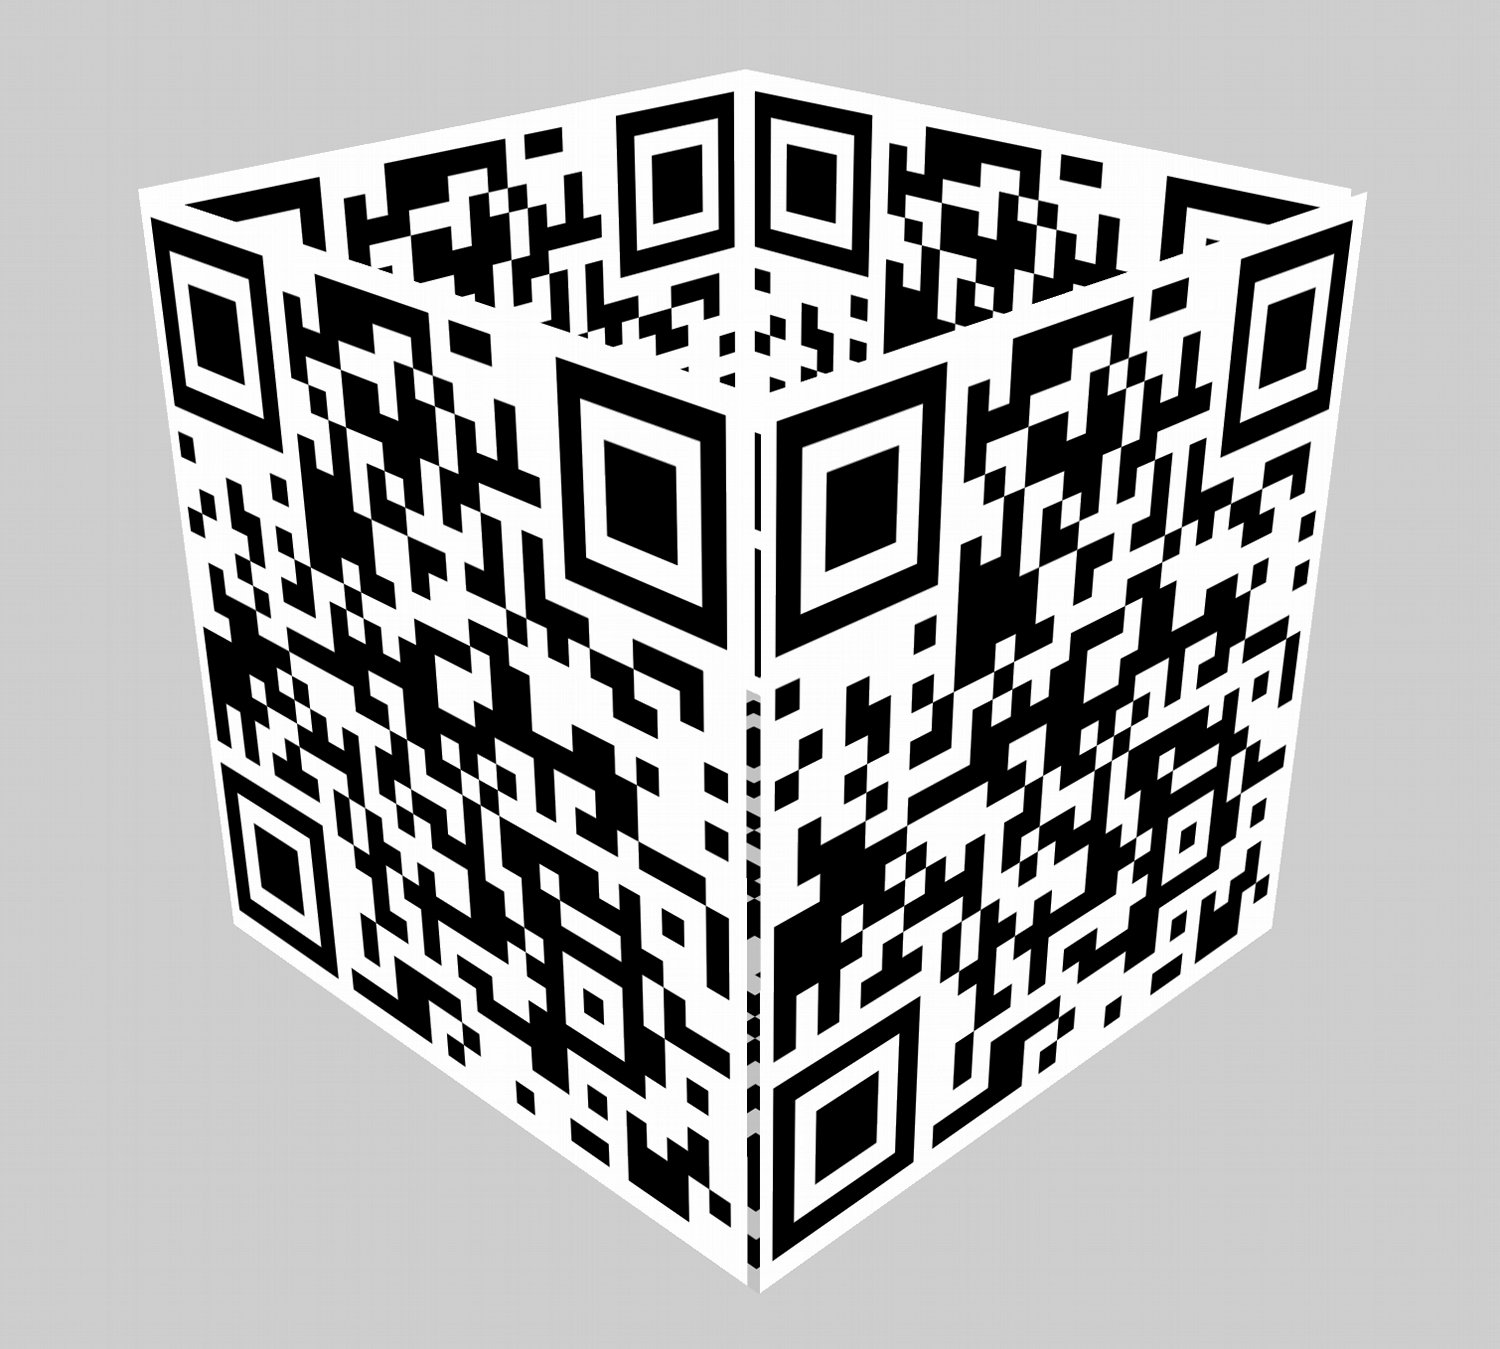 - My first attempt at a QR cube. -  - Art and the Zen of QR Codes - QaRt - making art from QR codes. - Tony Karp, design, art, photography, techno-impressionist, techno-impressionism, aerial photography , drone , drones , dji , mavic pro , video , 3D printing - Books -